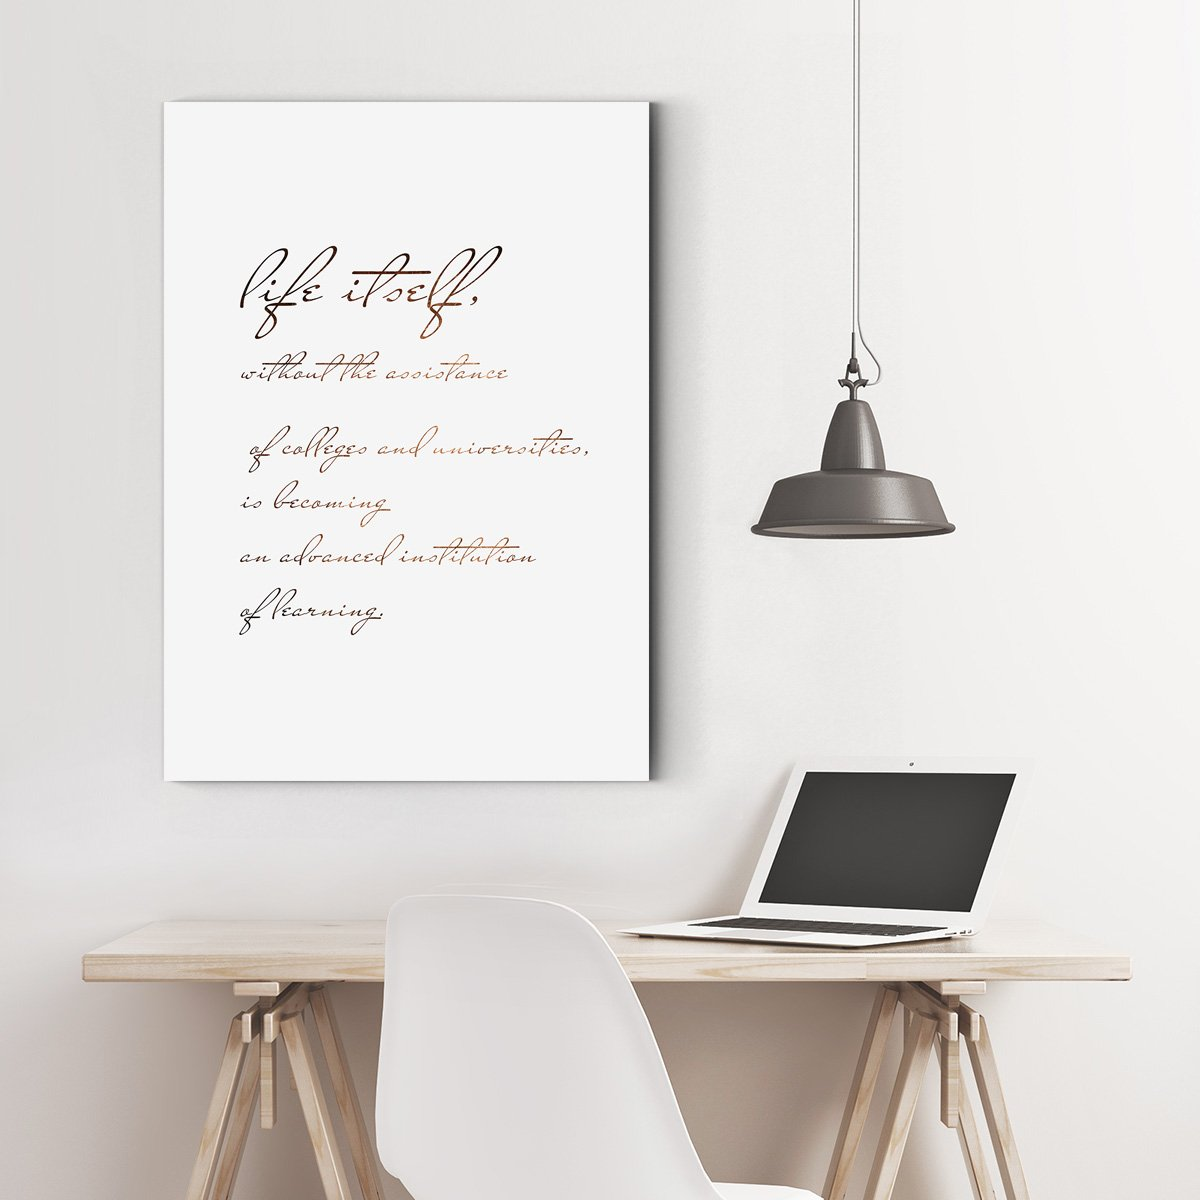 Contracted and lovely wind - abstract adornment picture - sitting room - English letter